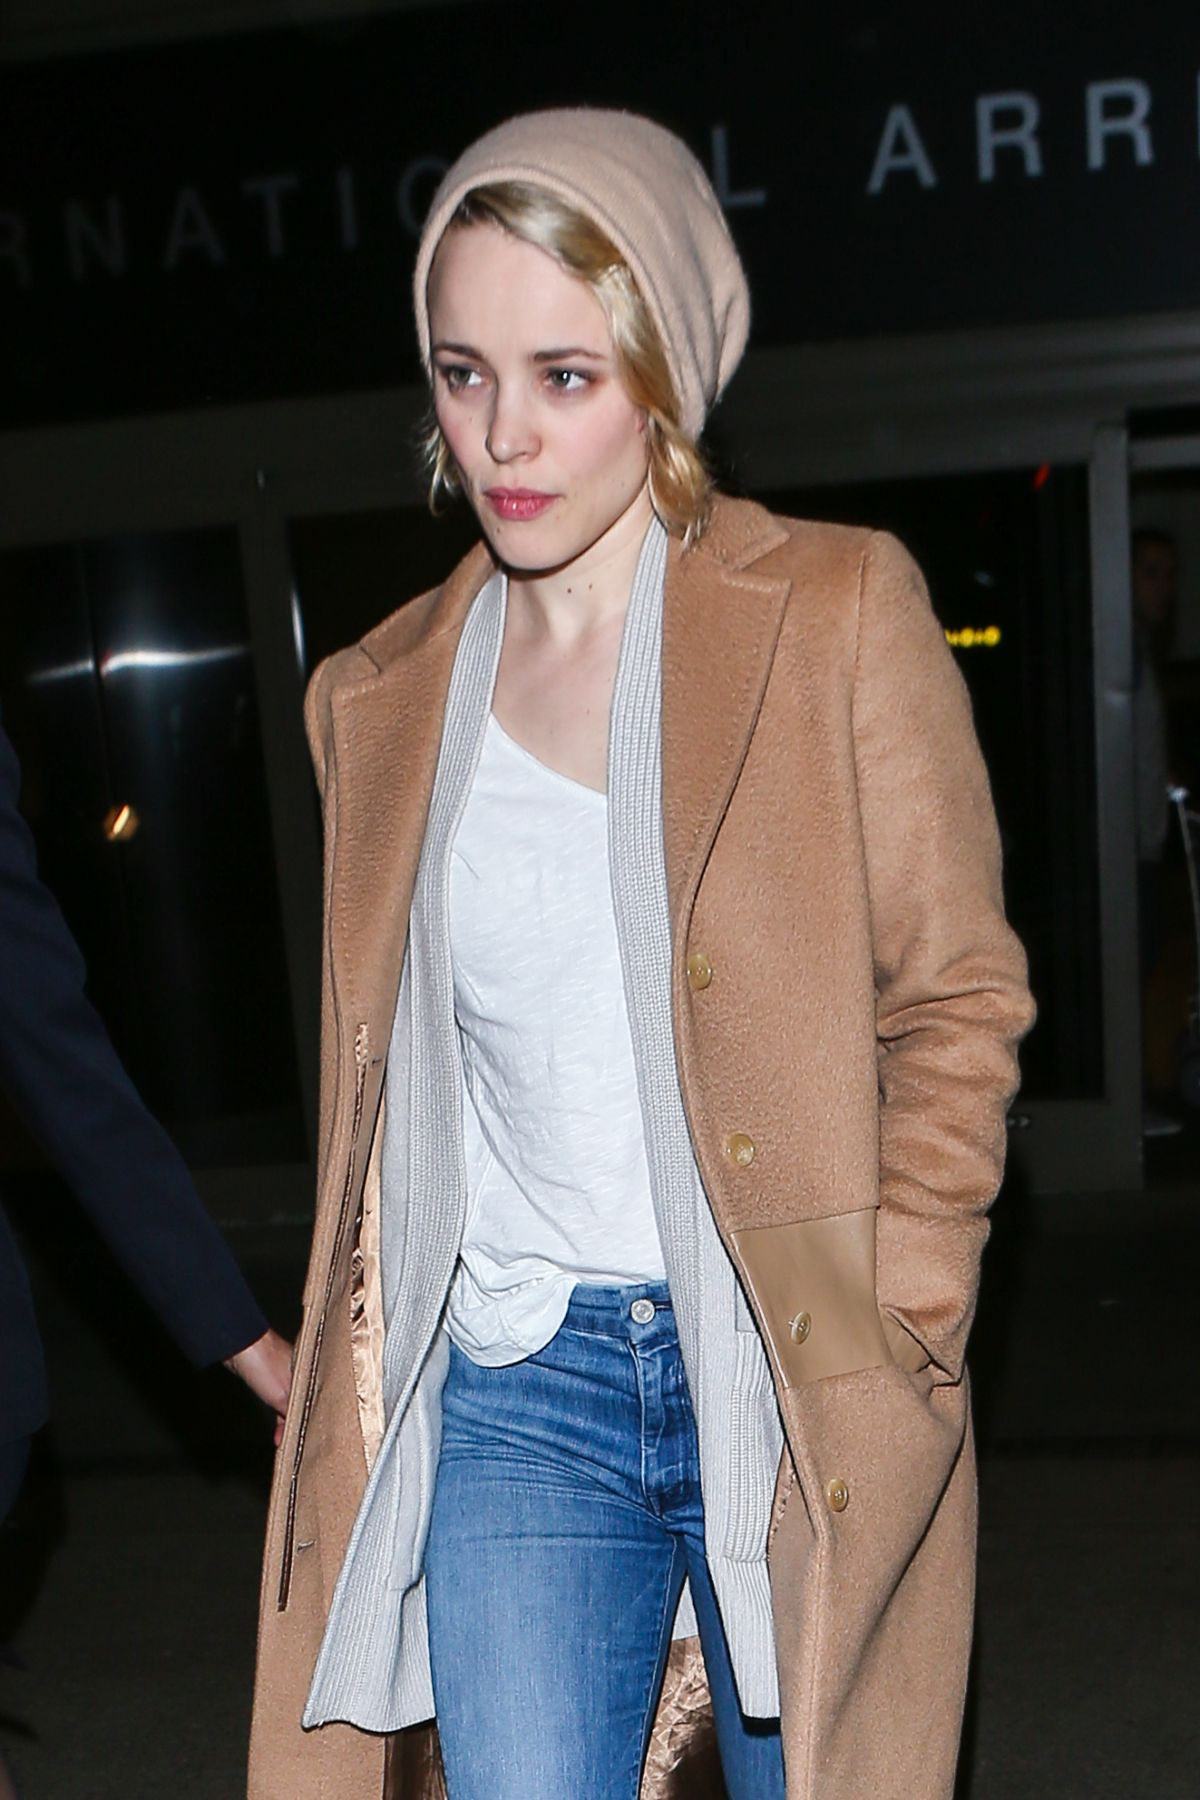 RACHEL MCADAMS Arrives at LAX Airport in Los Angeles 01/09 ...